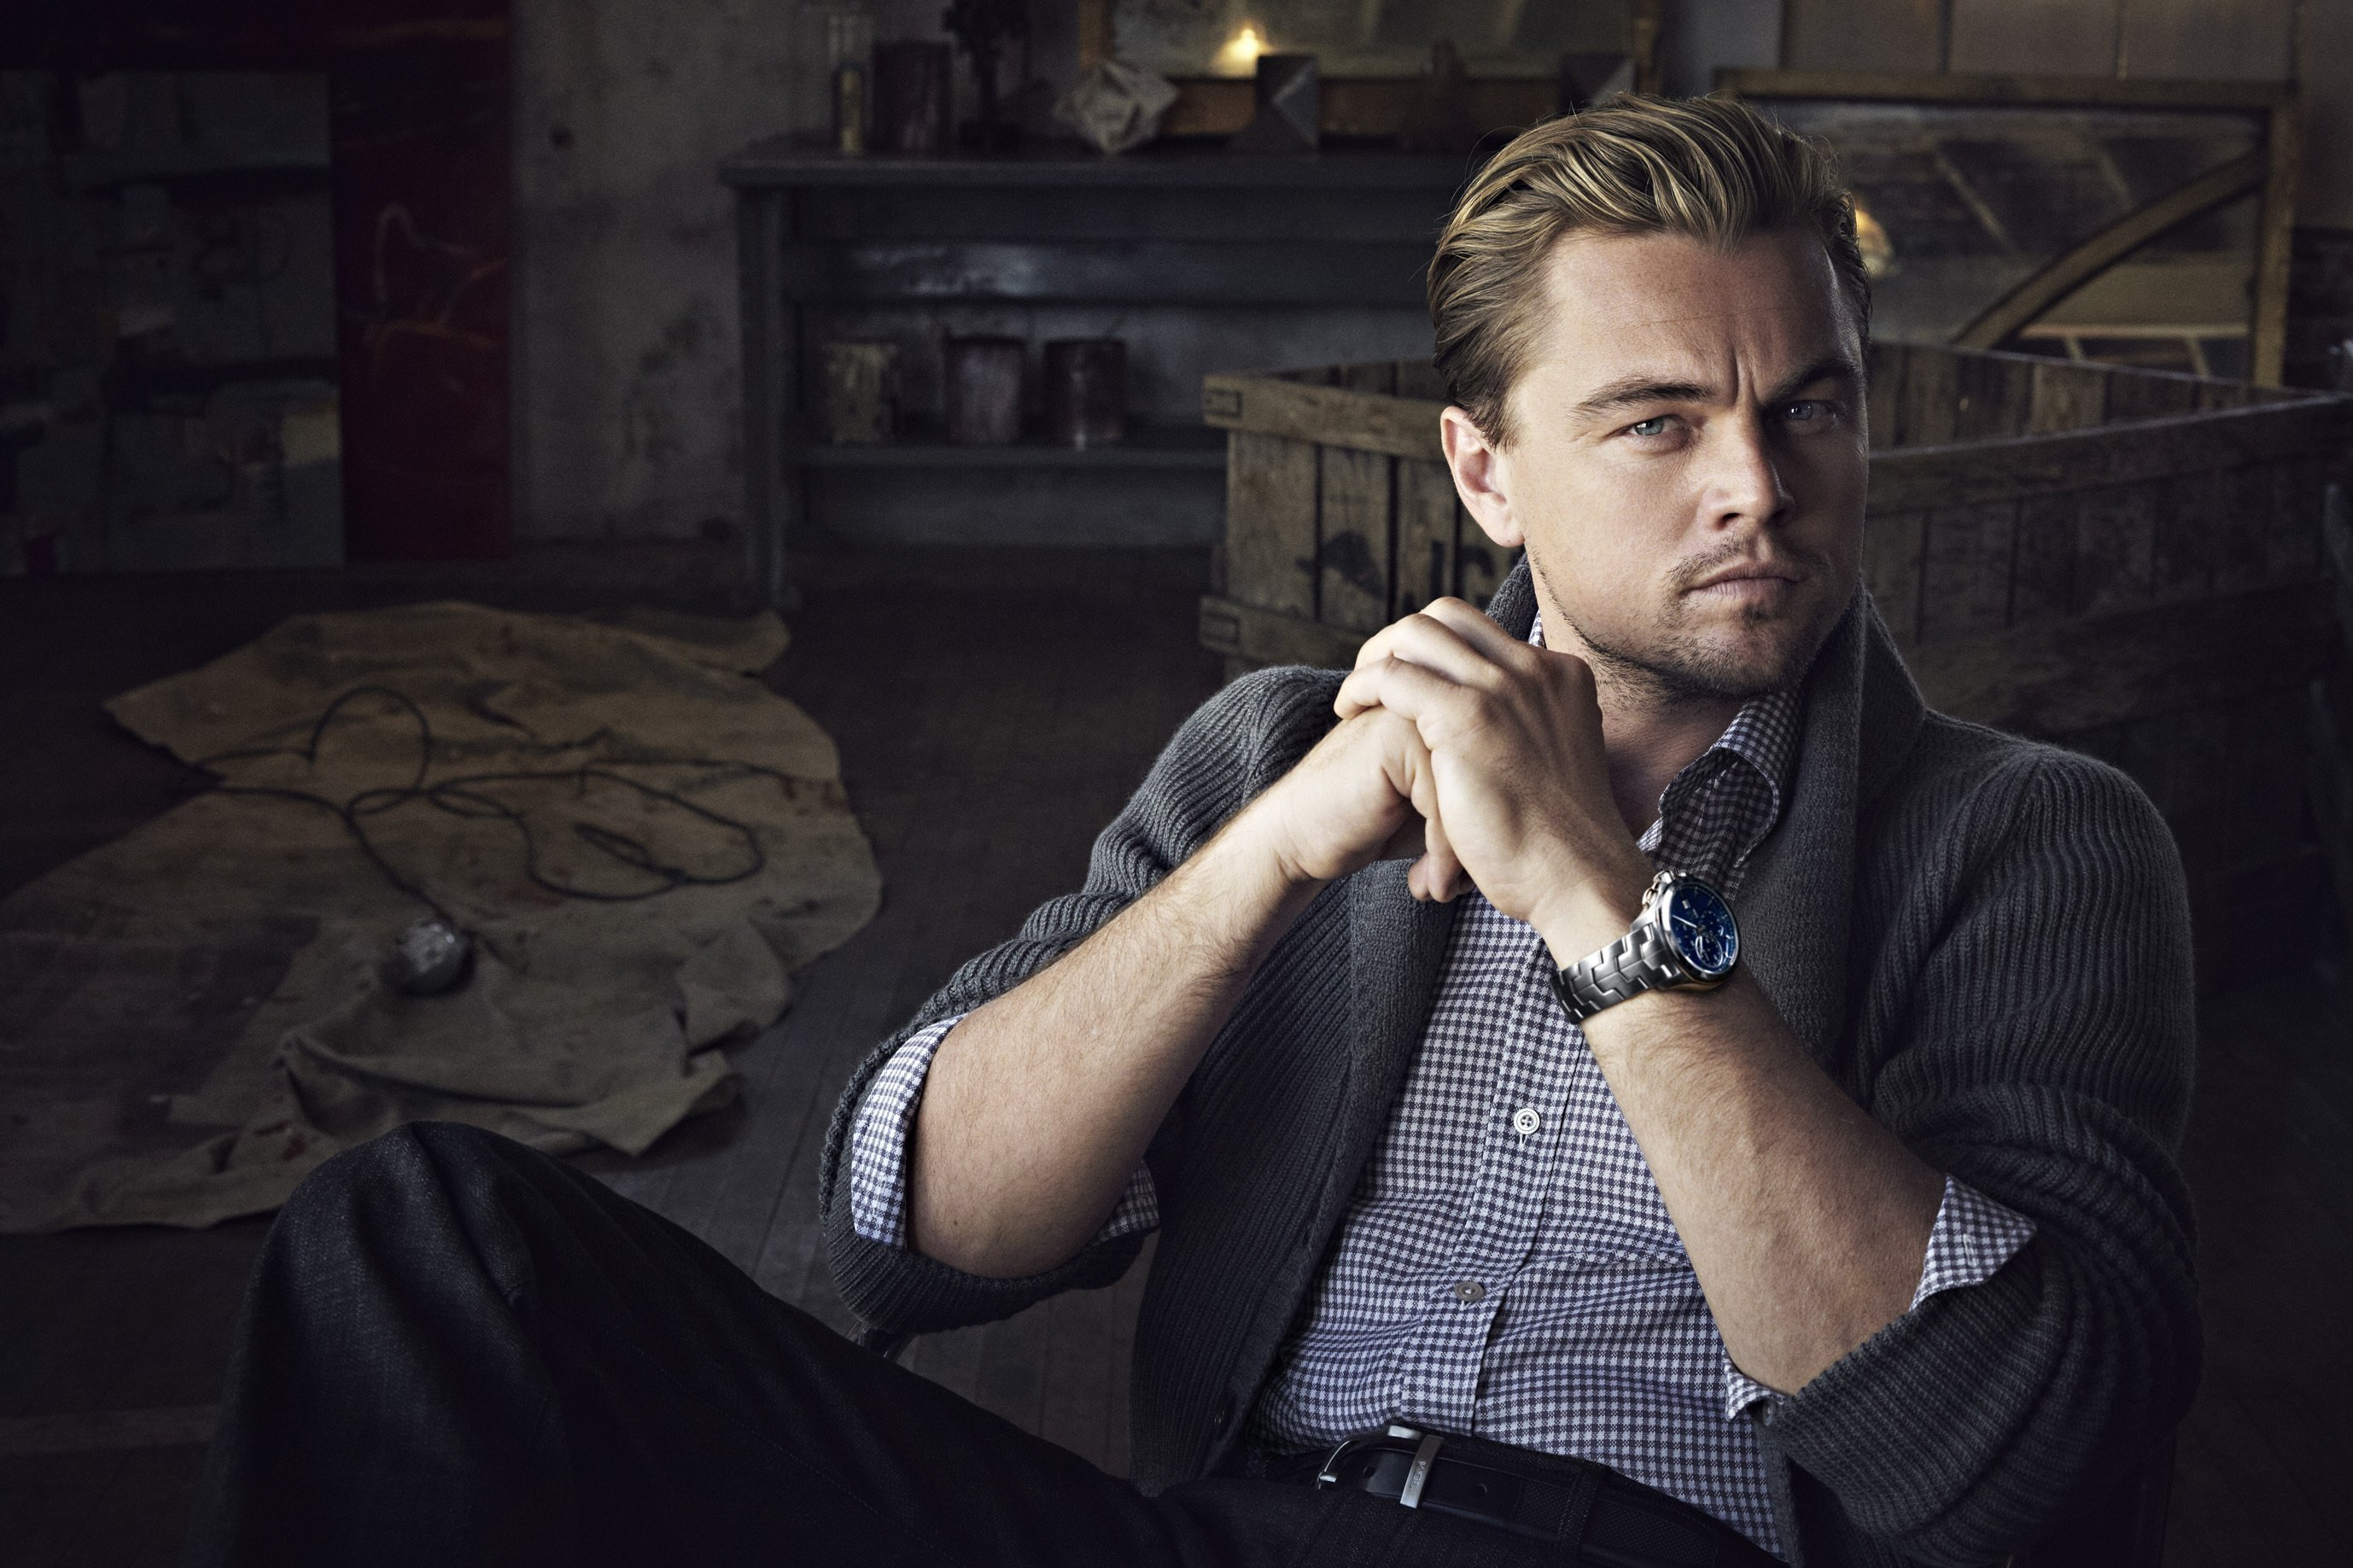 Leonardo Dicaprio Wallpapers Pictures Images 2756x1837